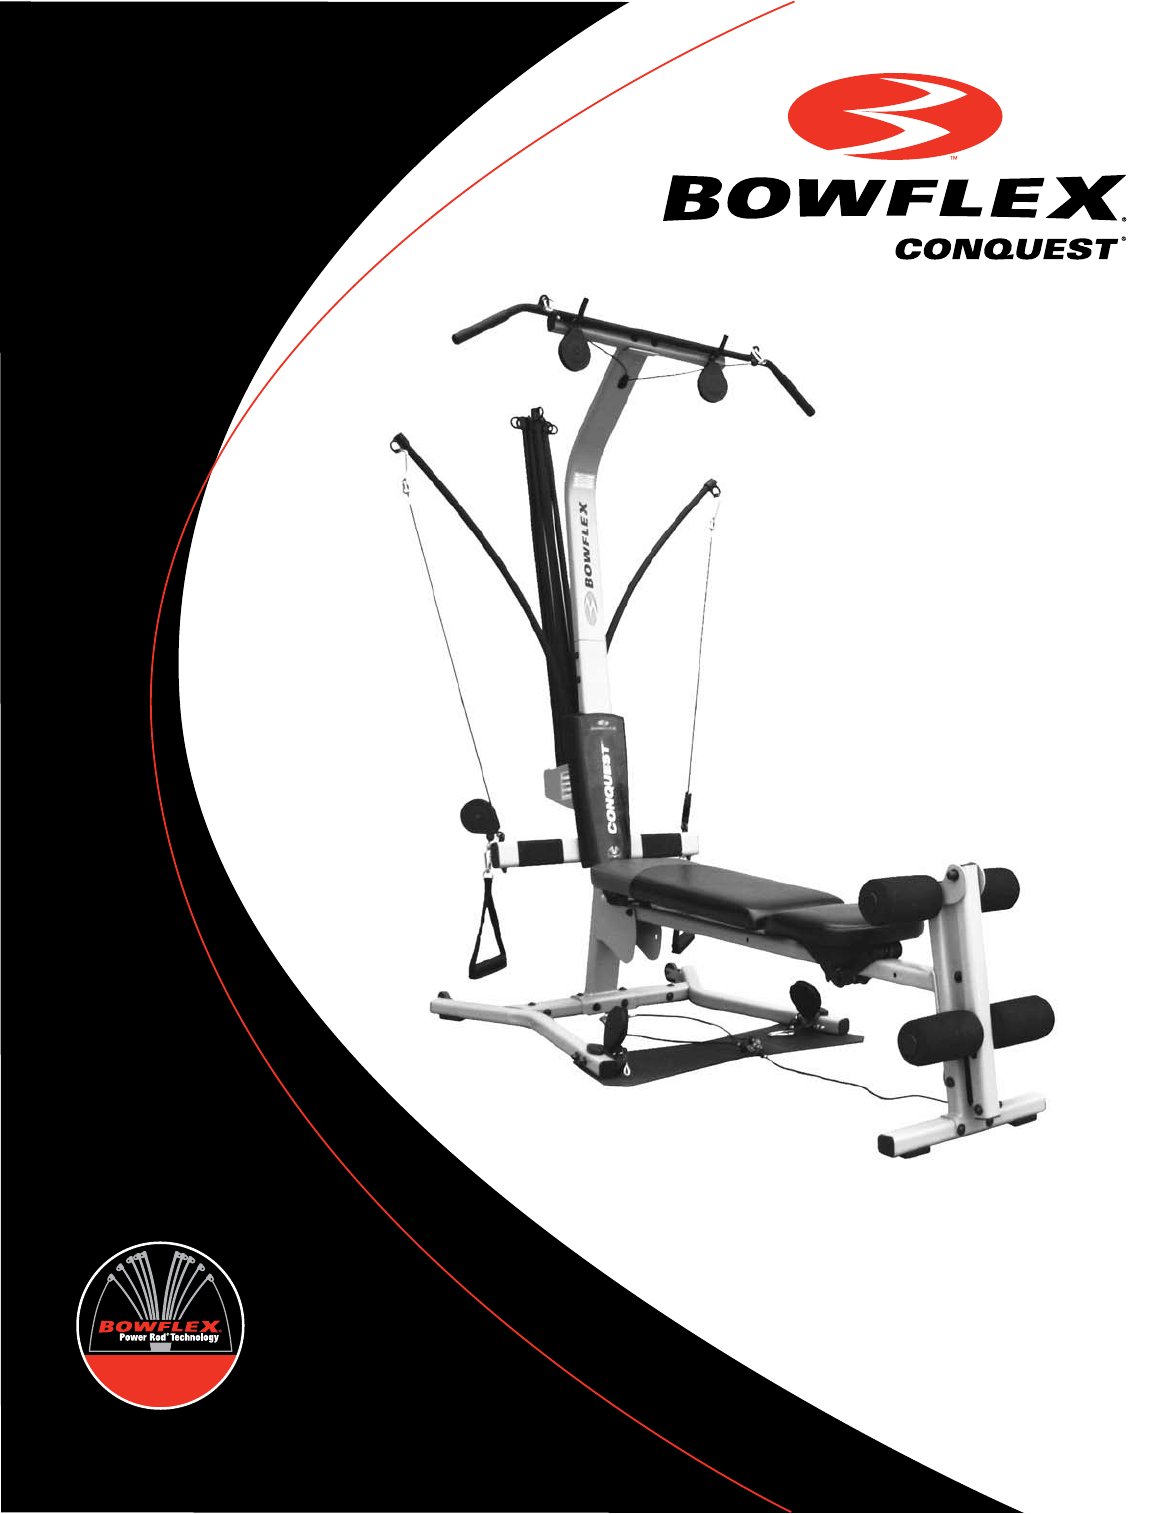 bowflex home gym conquest user guide manualsonline com rh fitness manualsonline com bowflex motivator 2 manual to print for free Bowflex Motivator 2 Poster